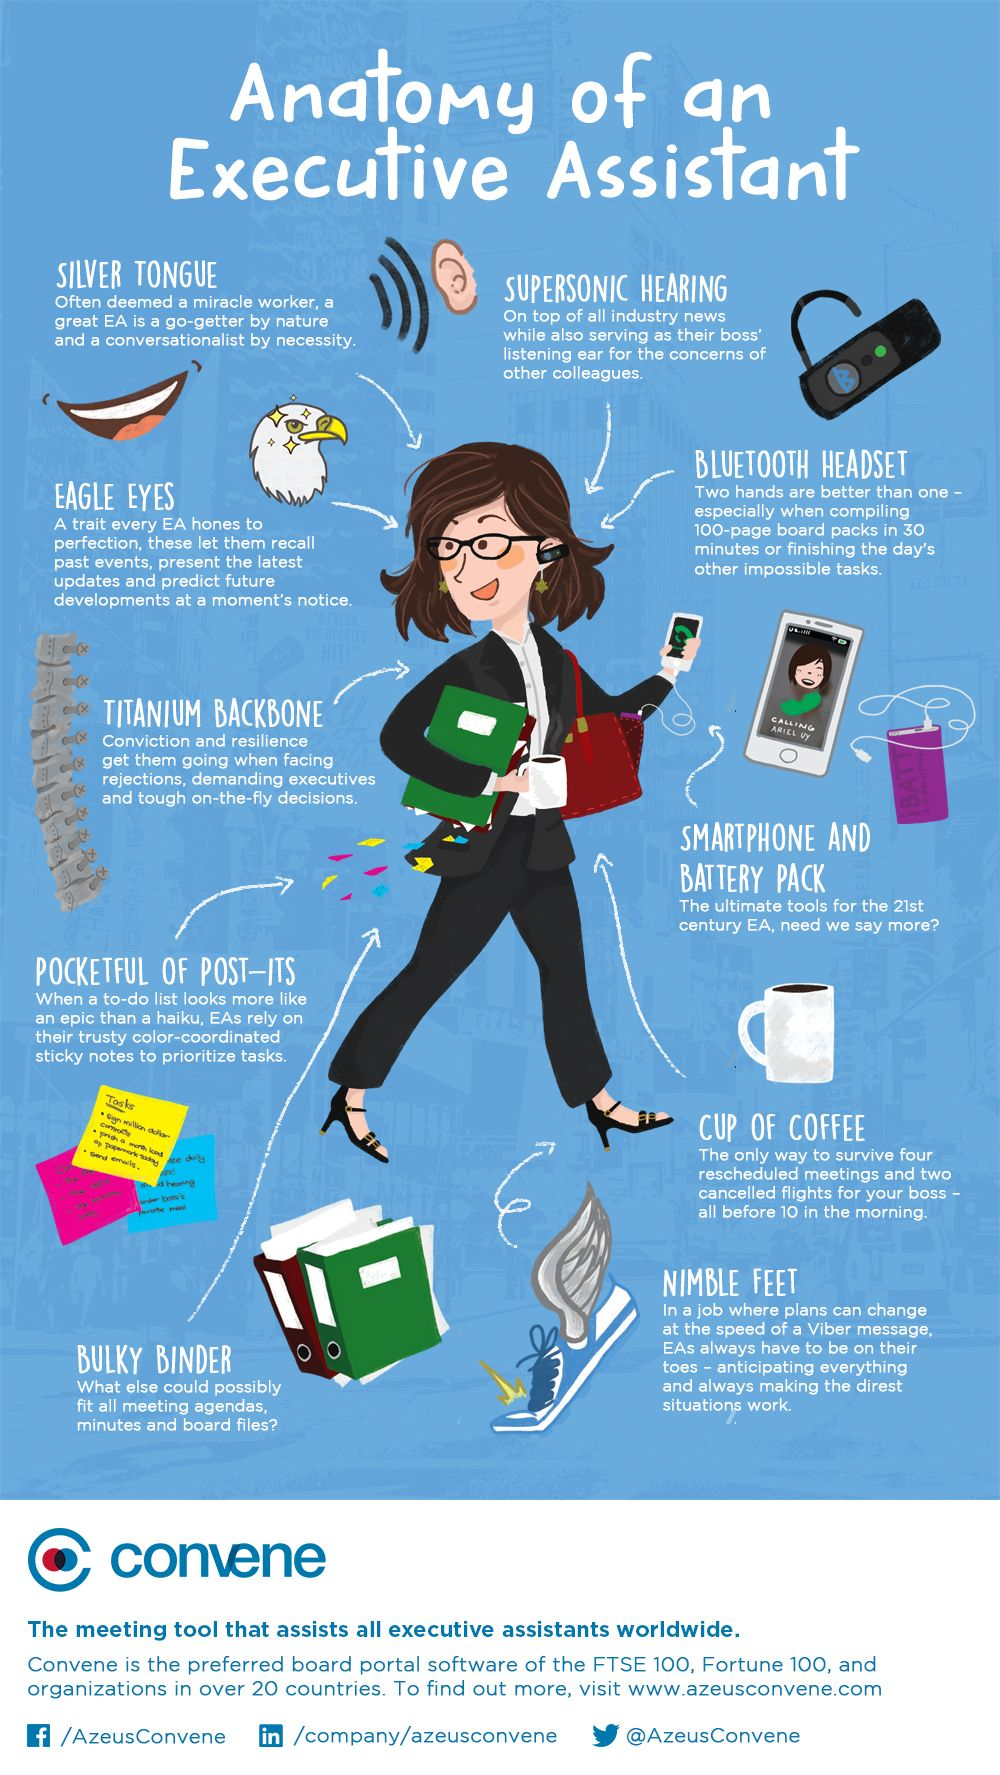 Share this with your favorite assistant. Anatomy of an